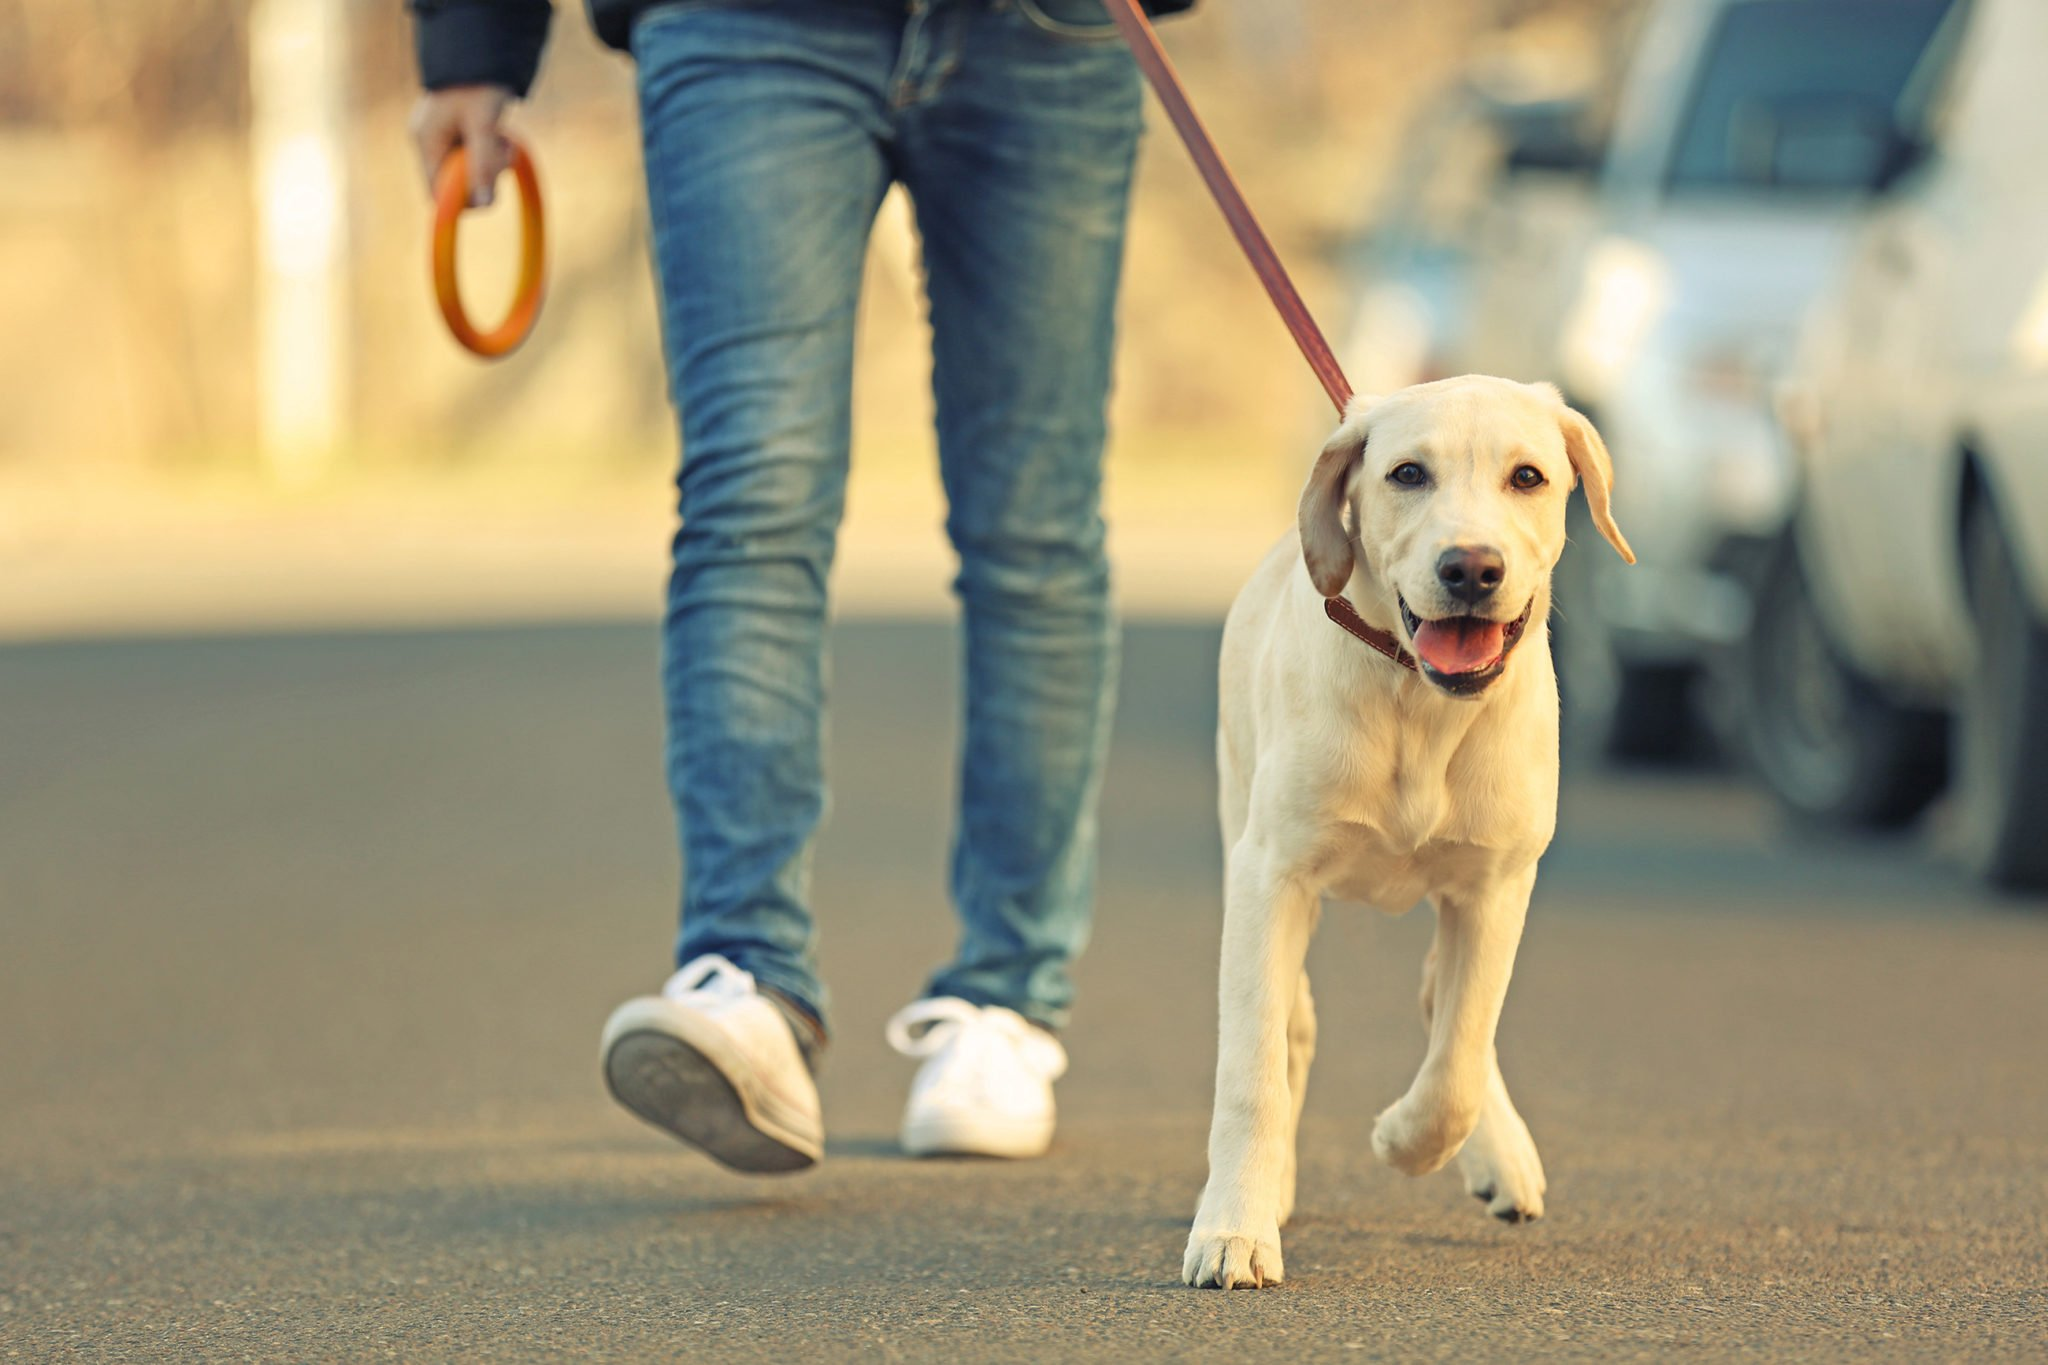 Are You Looking For Professional Dog Walker Jobs / Pet Sitter Jobs?